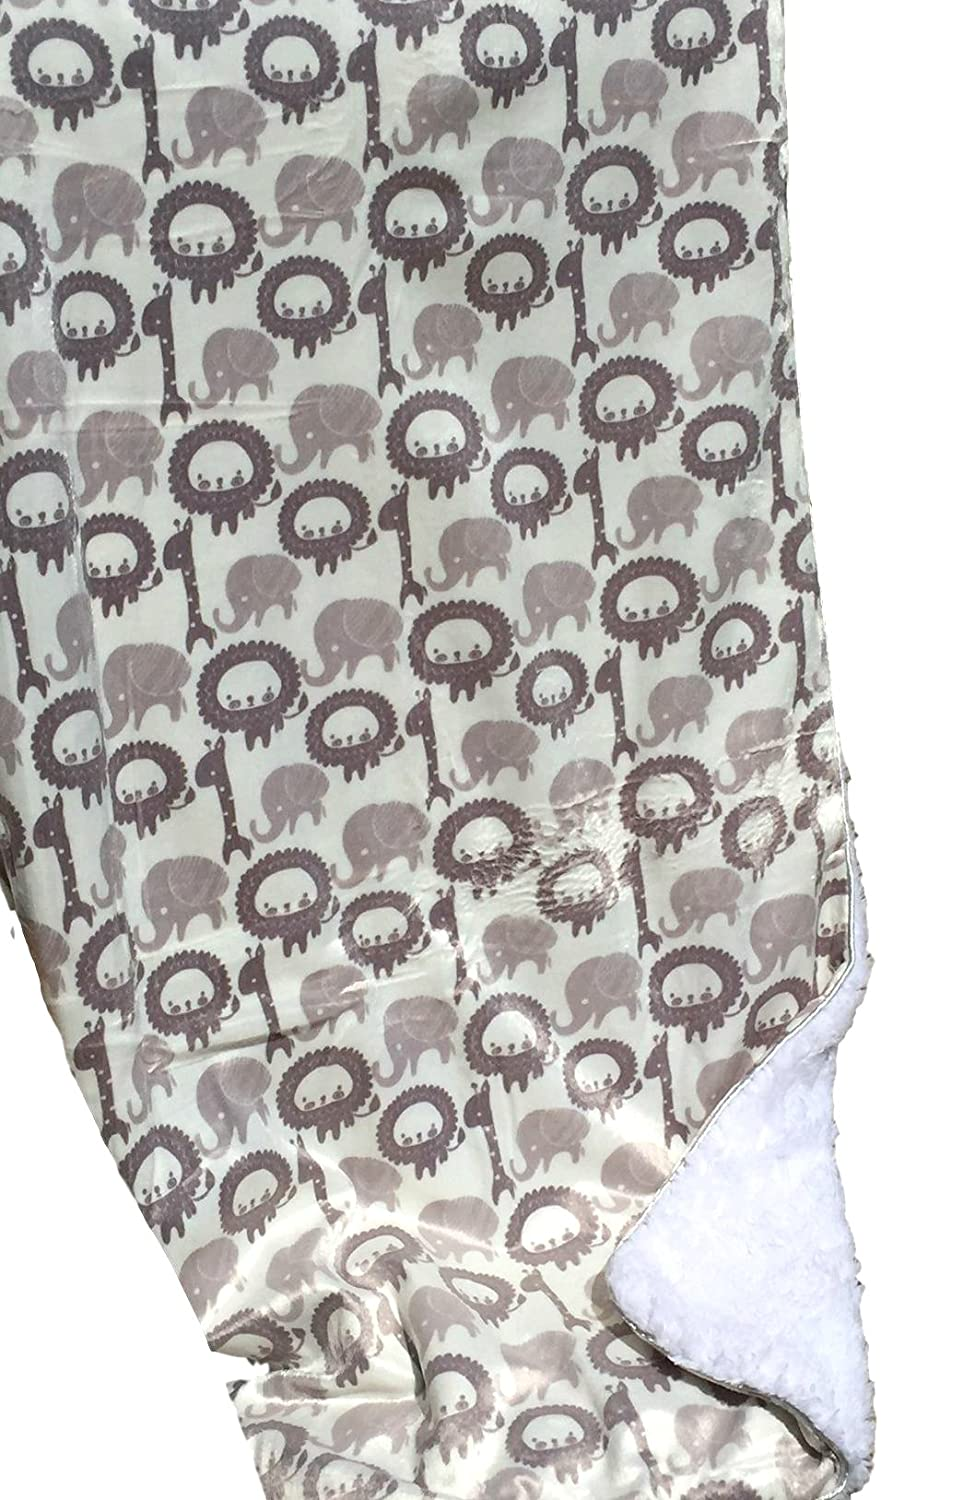 Baby Boy Blankets, Warm and Cozy, Extra Soft Micro Plush Fleece Blanket, Anti-Pilling, Sherpa Backing, Multiple Designs and Themes (Lions & Elephants)